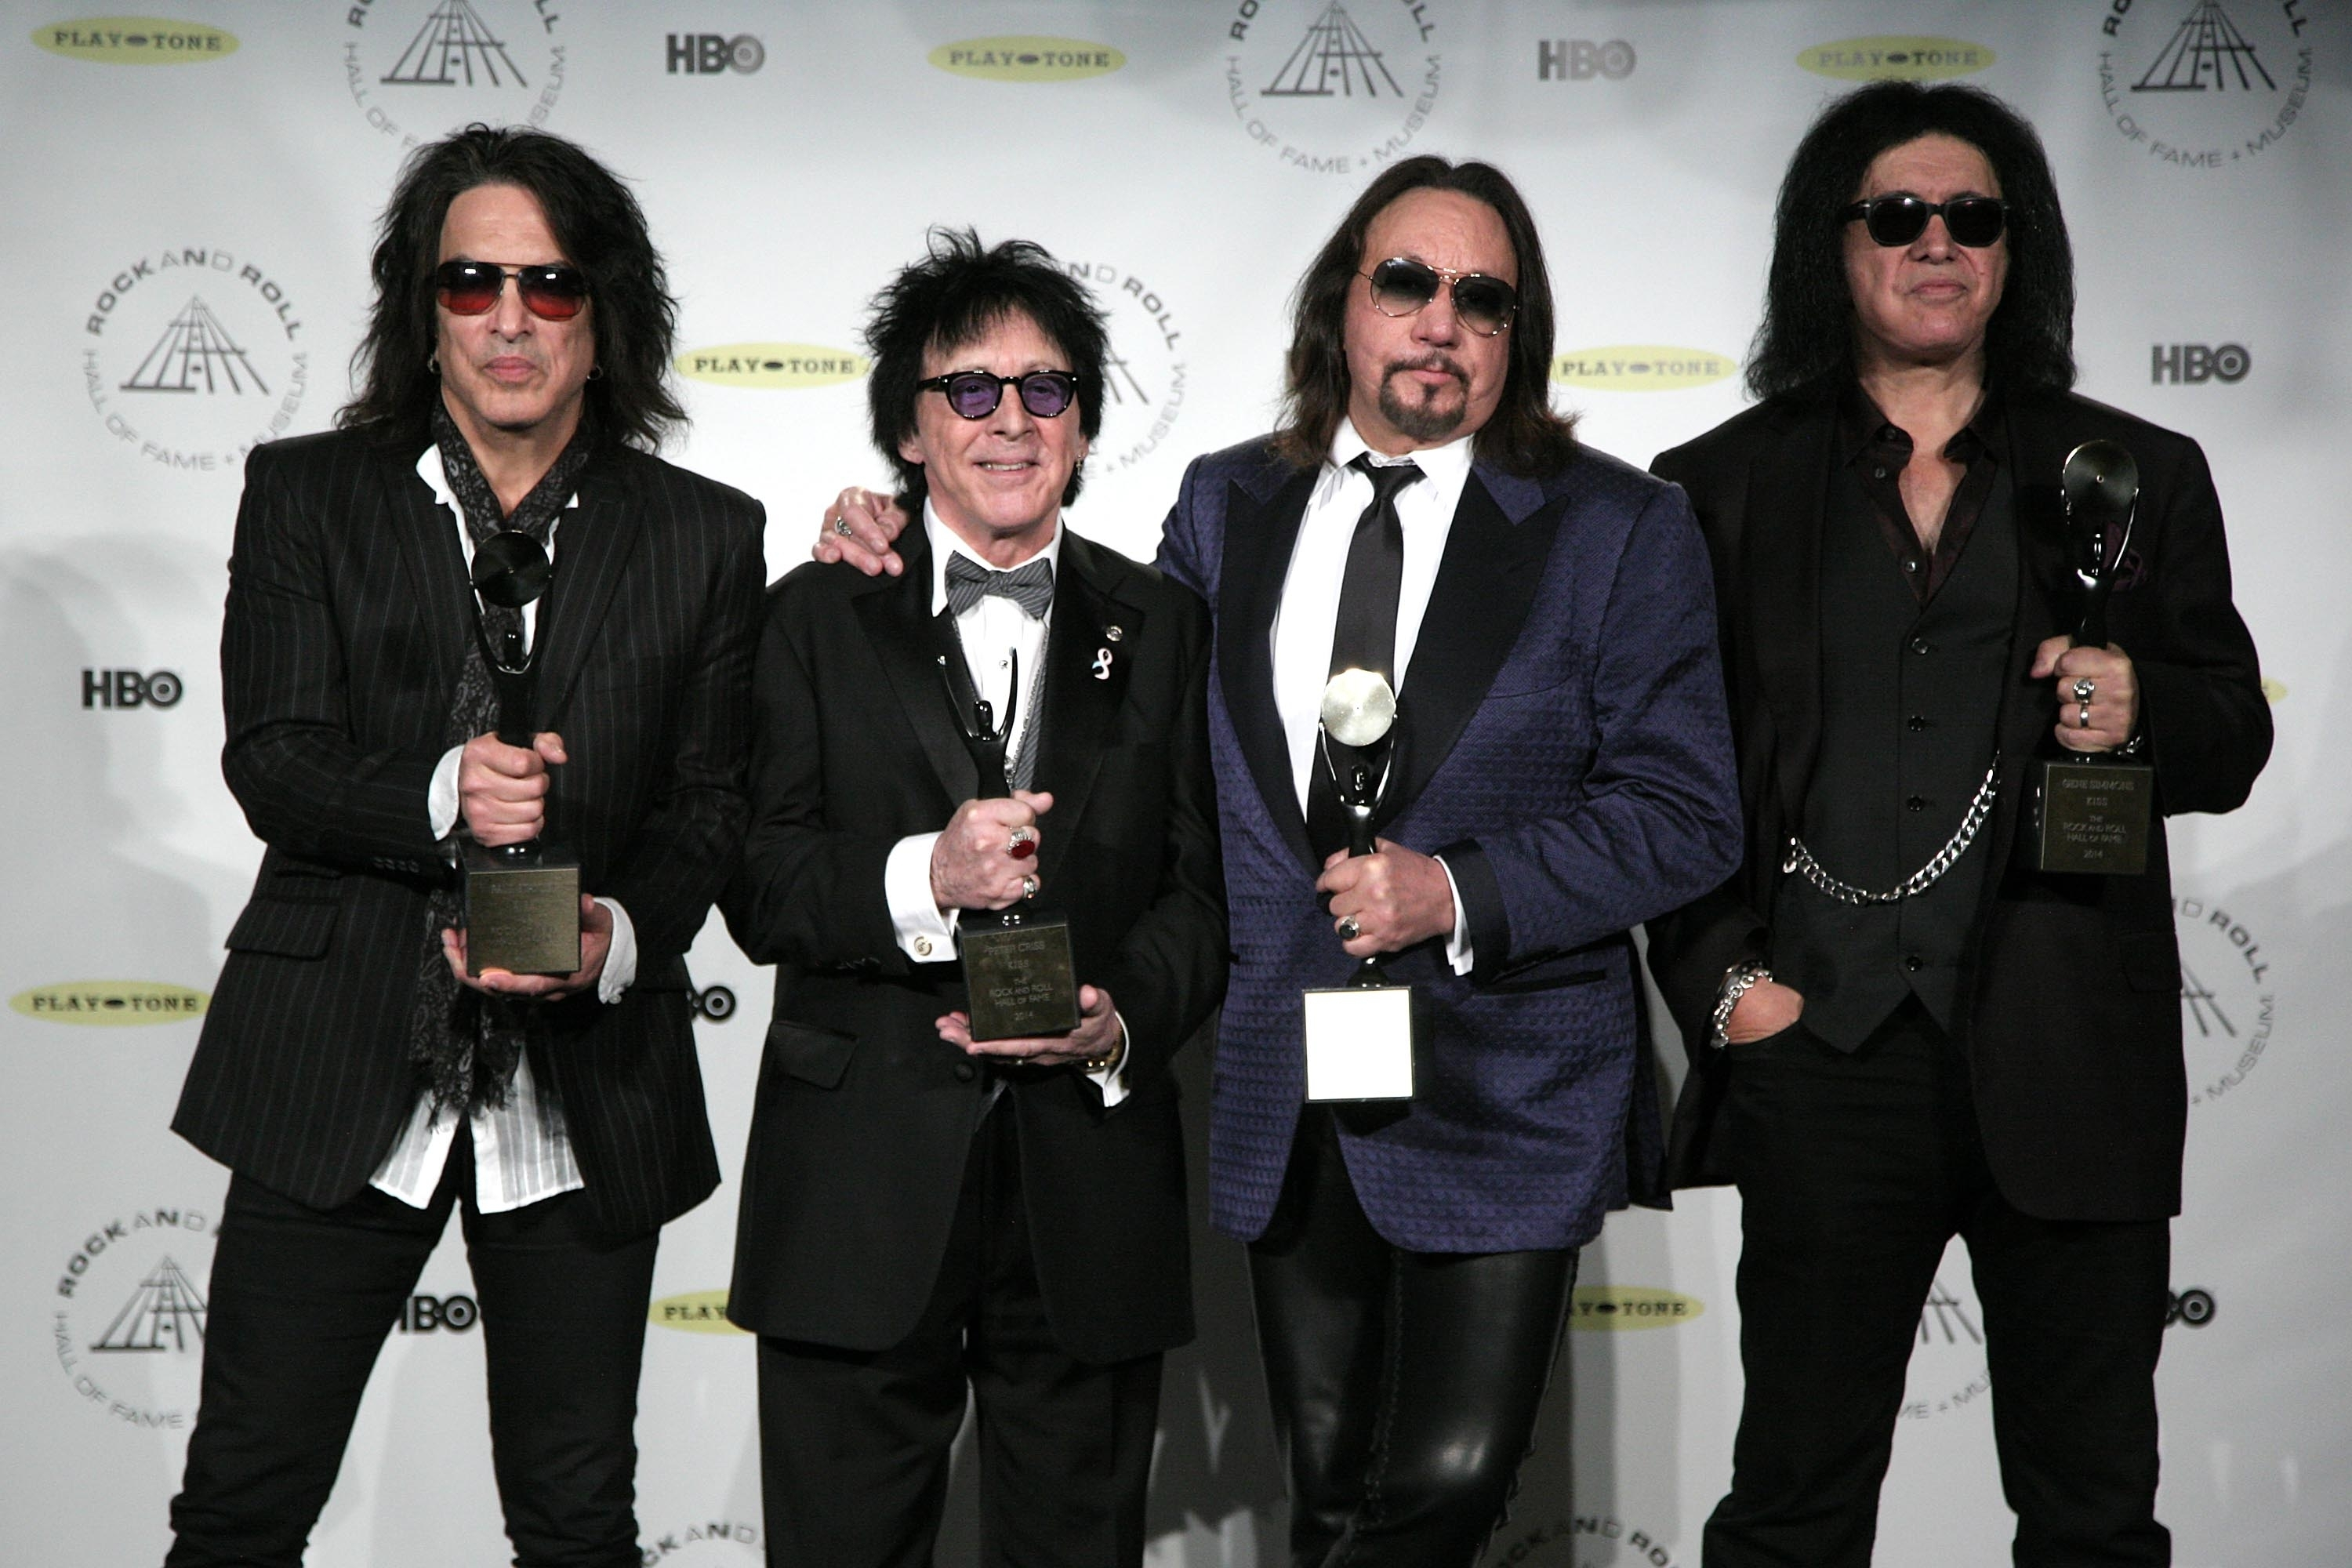 Hall of Fame Inductees Kiss original band members Paul Stanley, Peter Criss, Ace Frehley, and Gene Simmons appear in the press room at the 2014 Rock and Roll Hall of Fame Induction Ceremony on Thursday, April, 10, 2014 in New York. (Photo by Andy Kropa/Invision/AP)